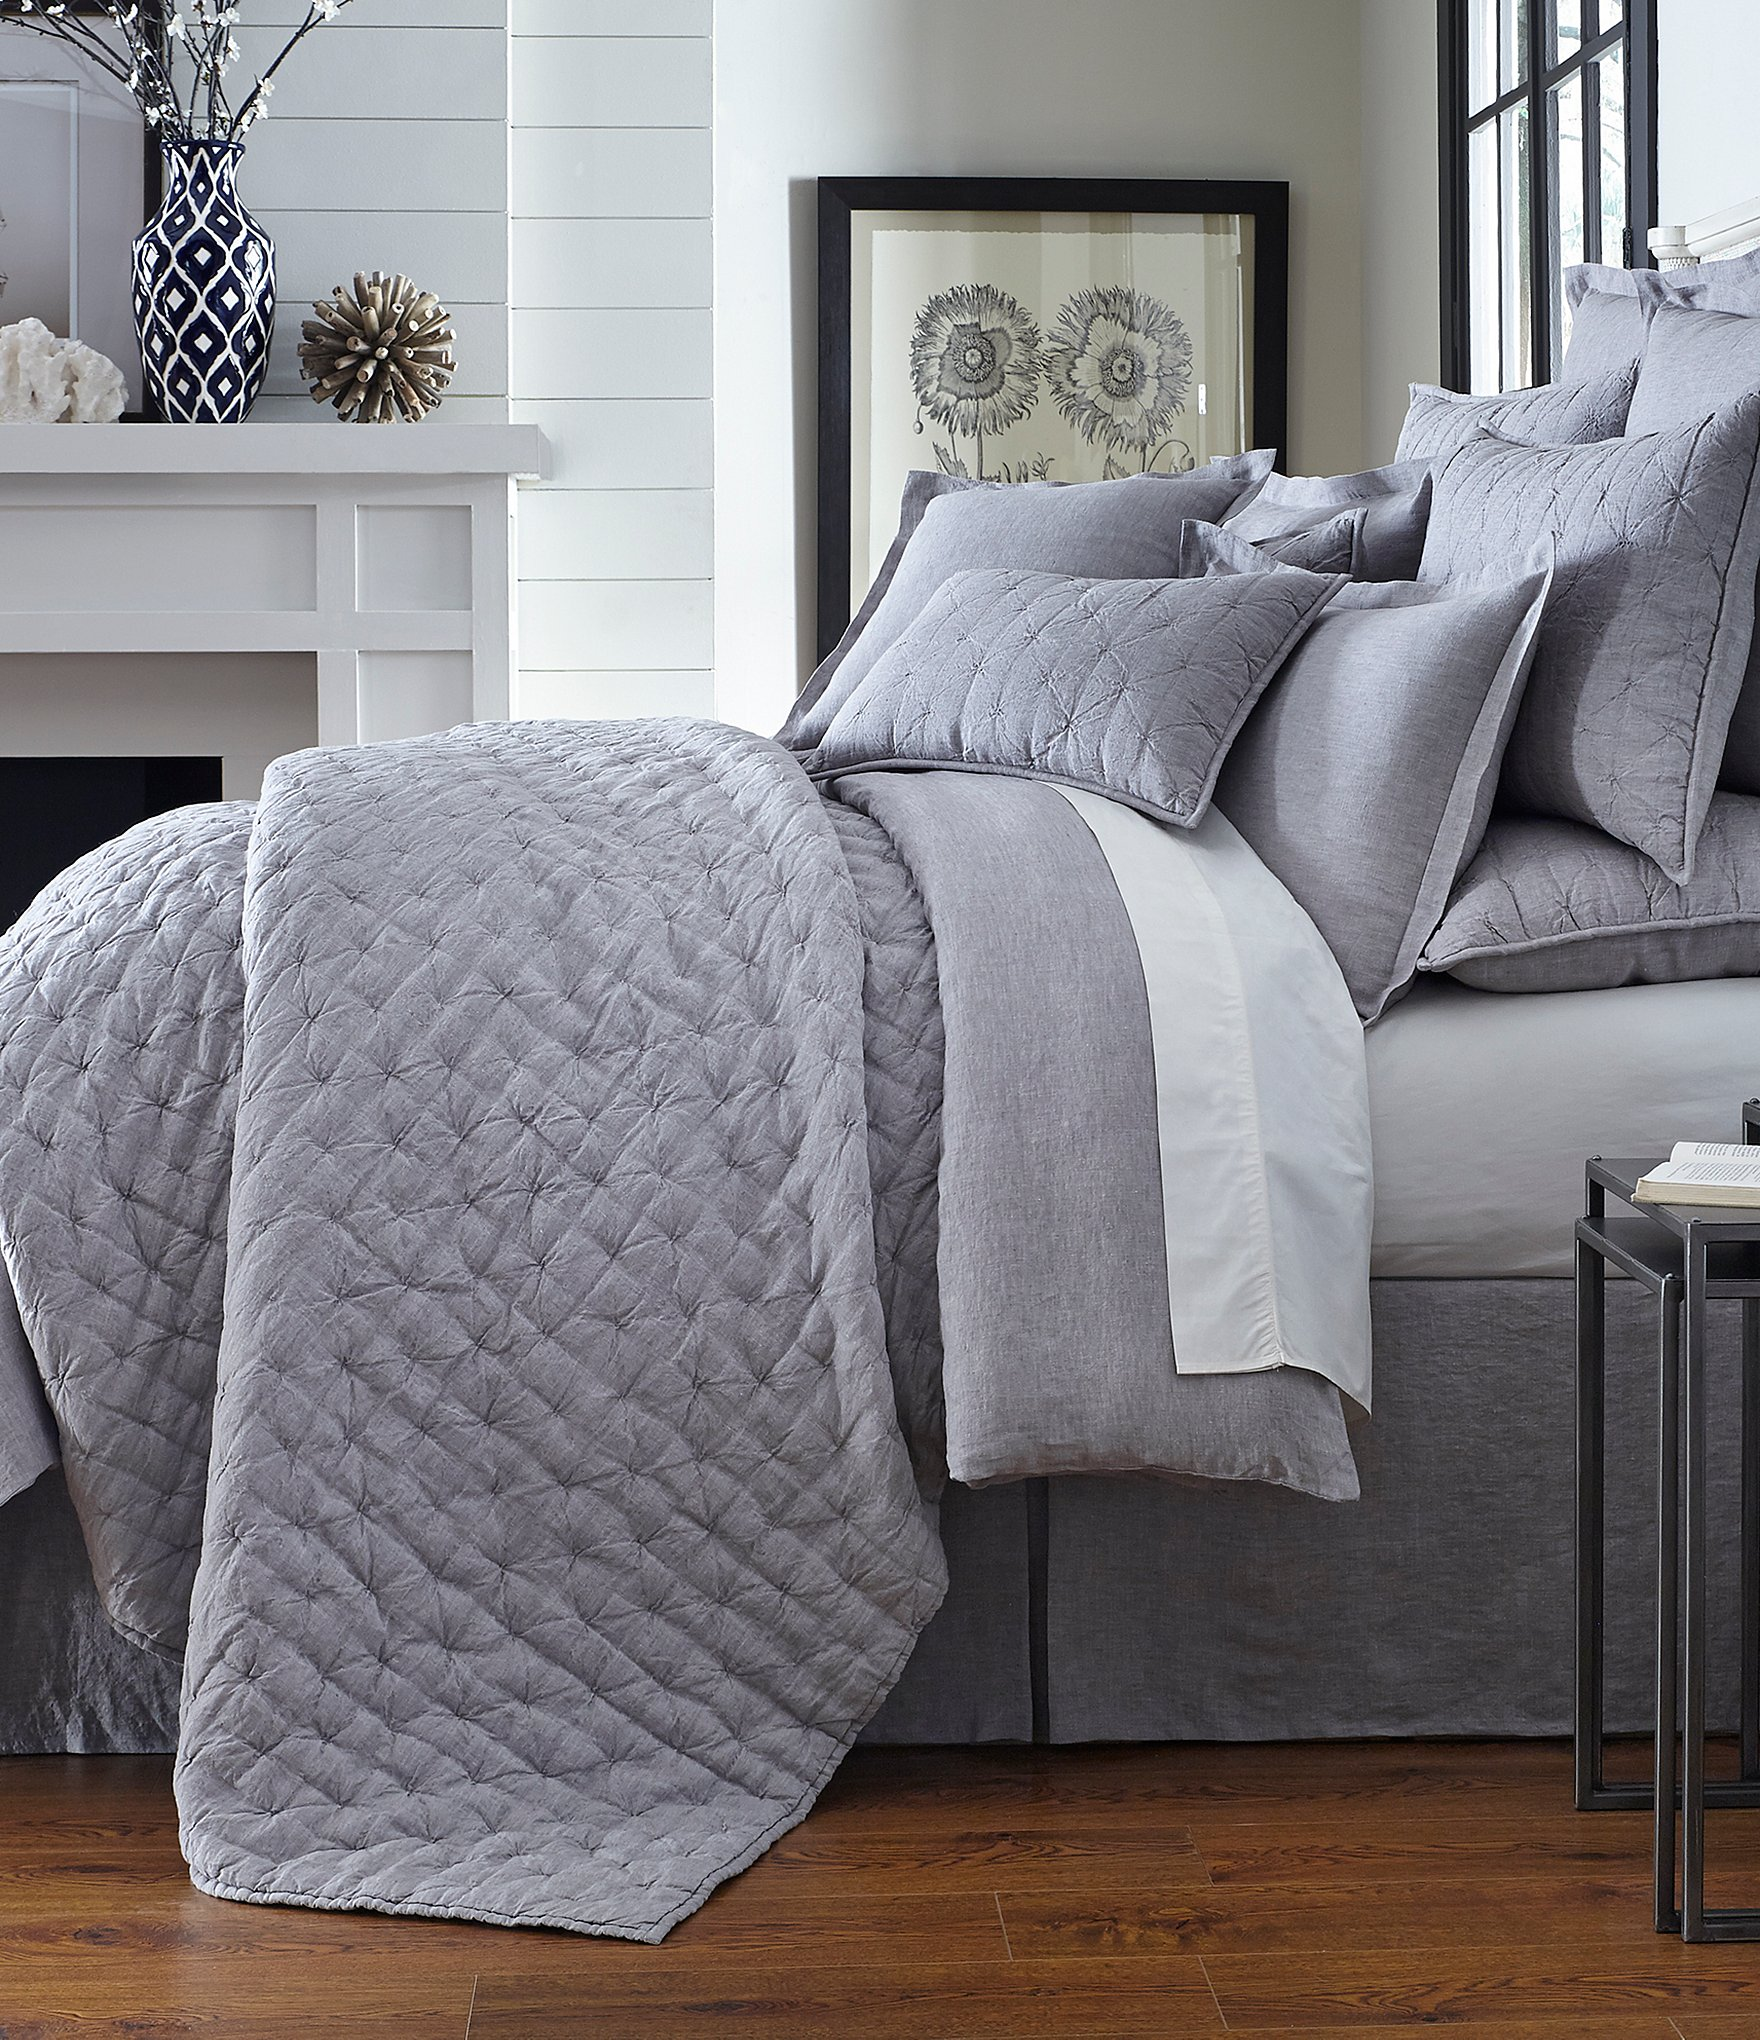 Southern Living Heirloom Linen Quilt Dillards